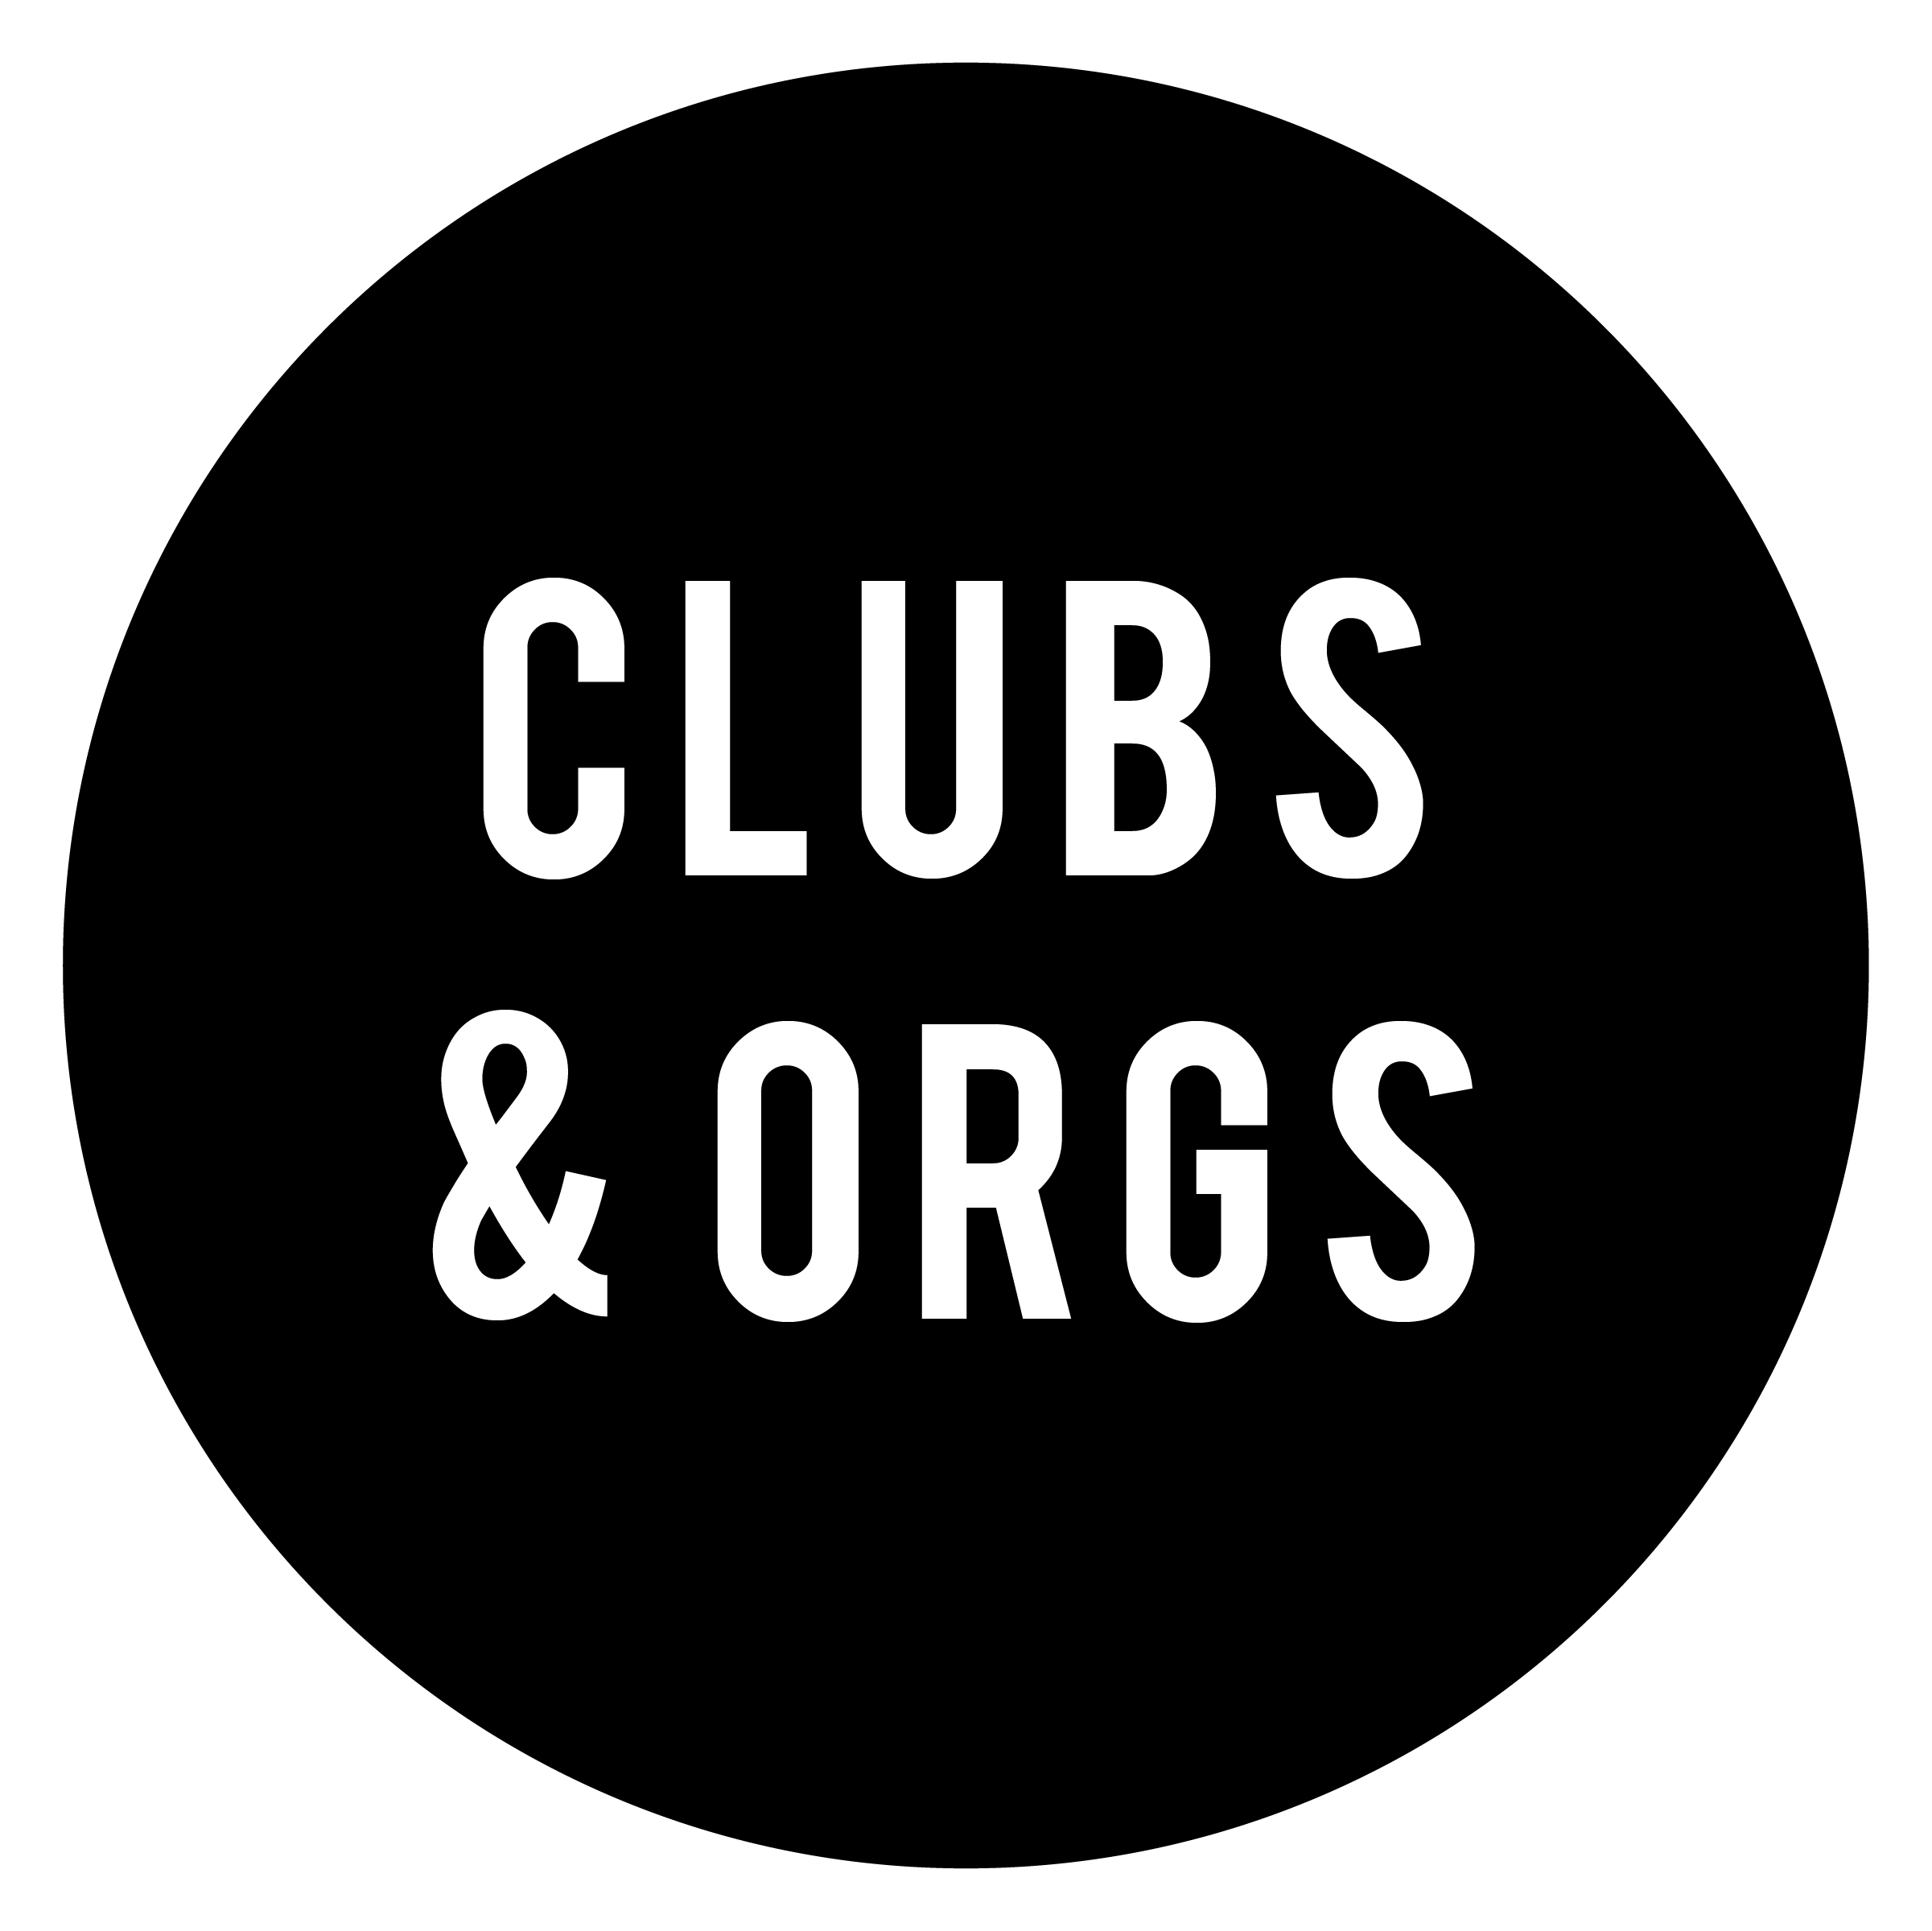 Clubs and Organizations Logo - Circle Black